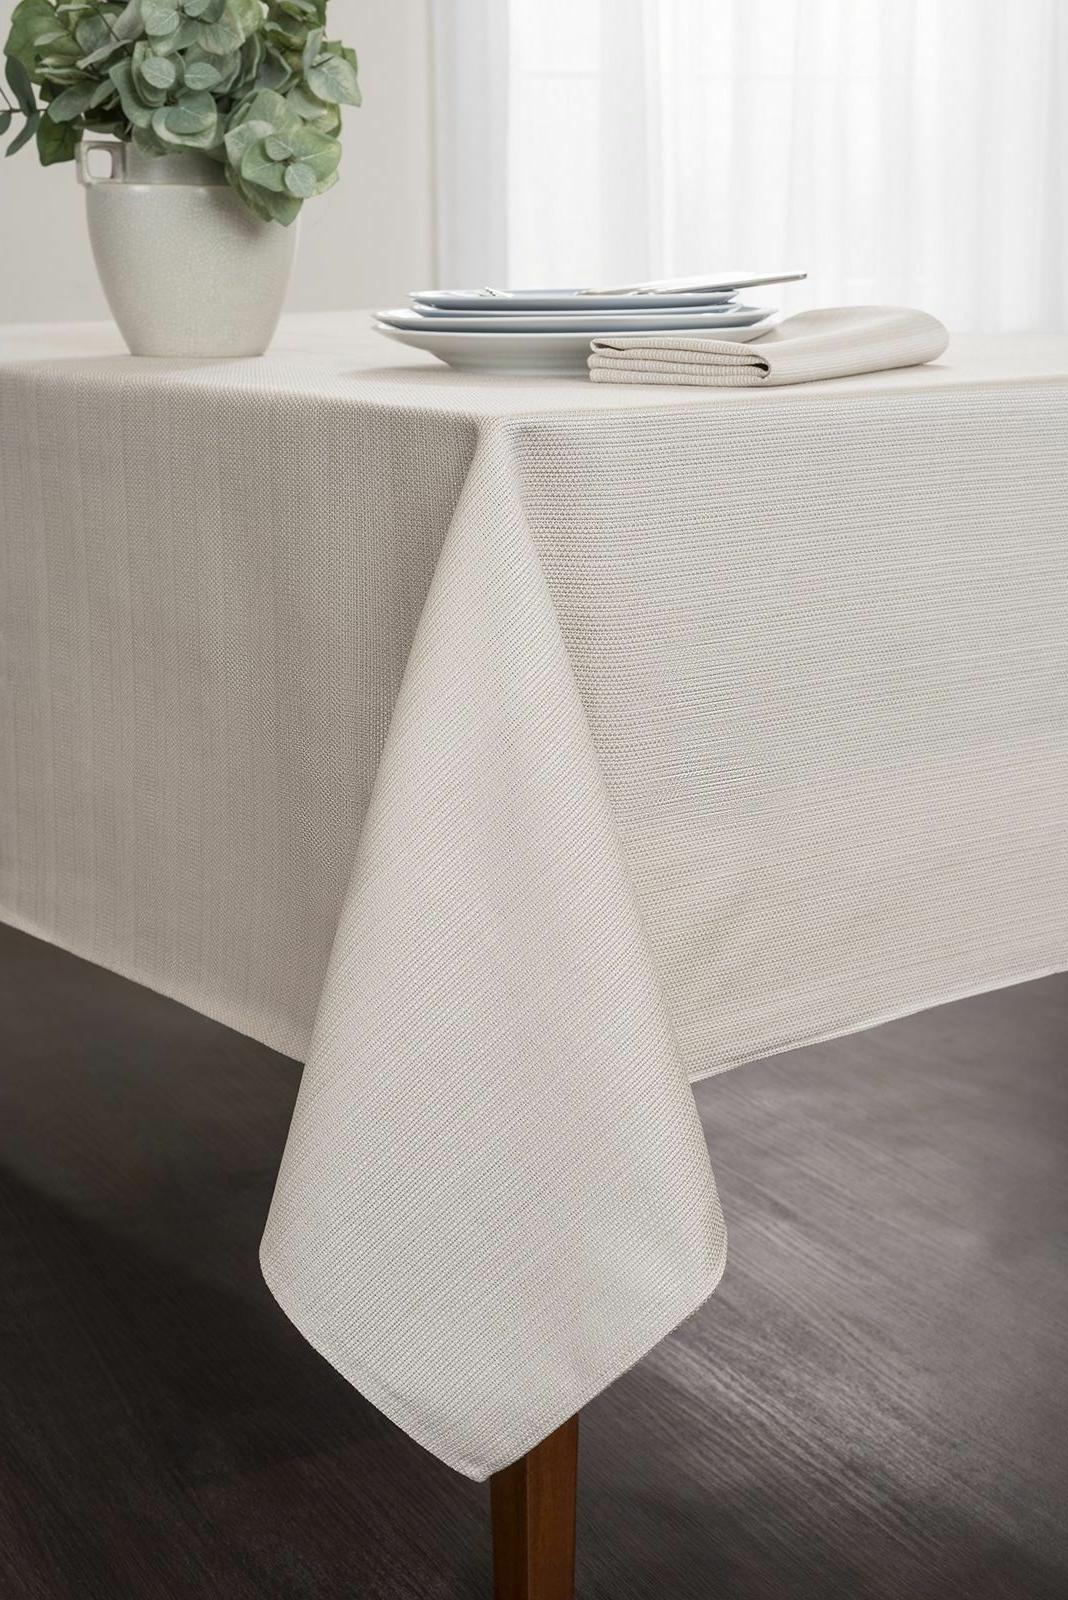 Textured Tablecloth, White, Rectangular